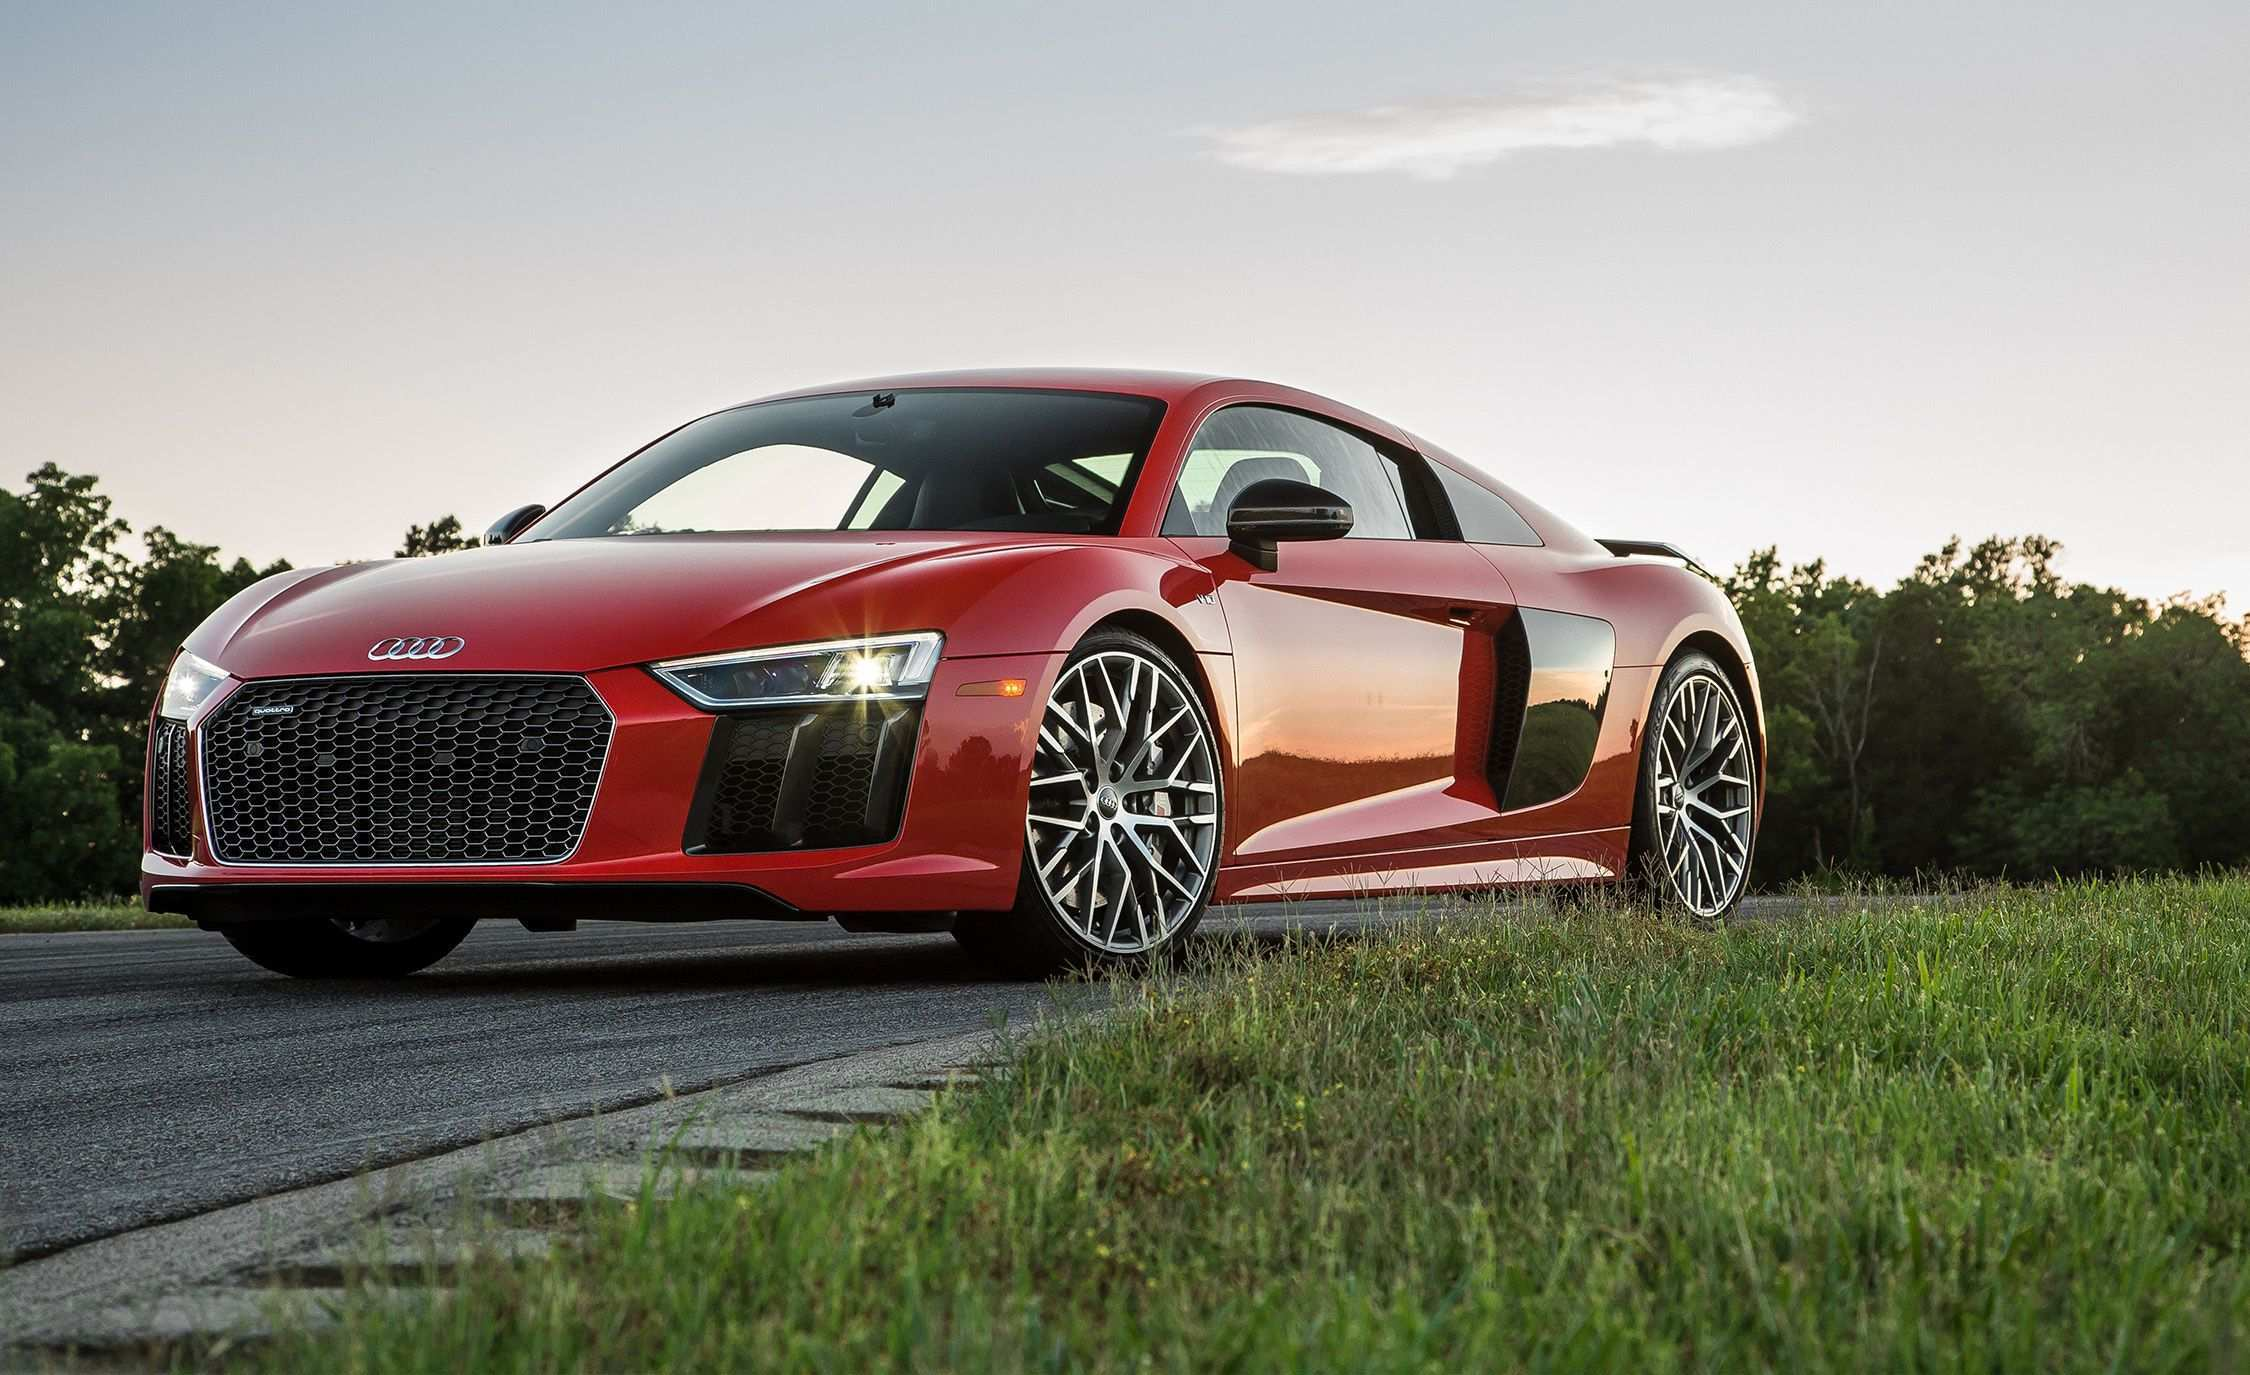 26 Gallery of The R8 Audi 2019 Review And Price Release Date with The R8 Audi 2019 Review And Price